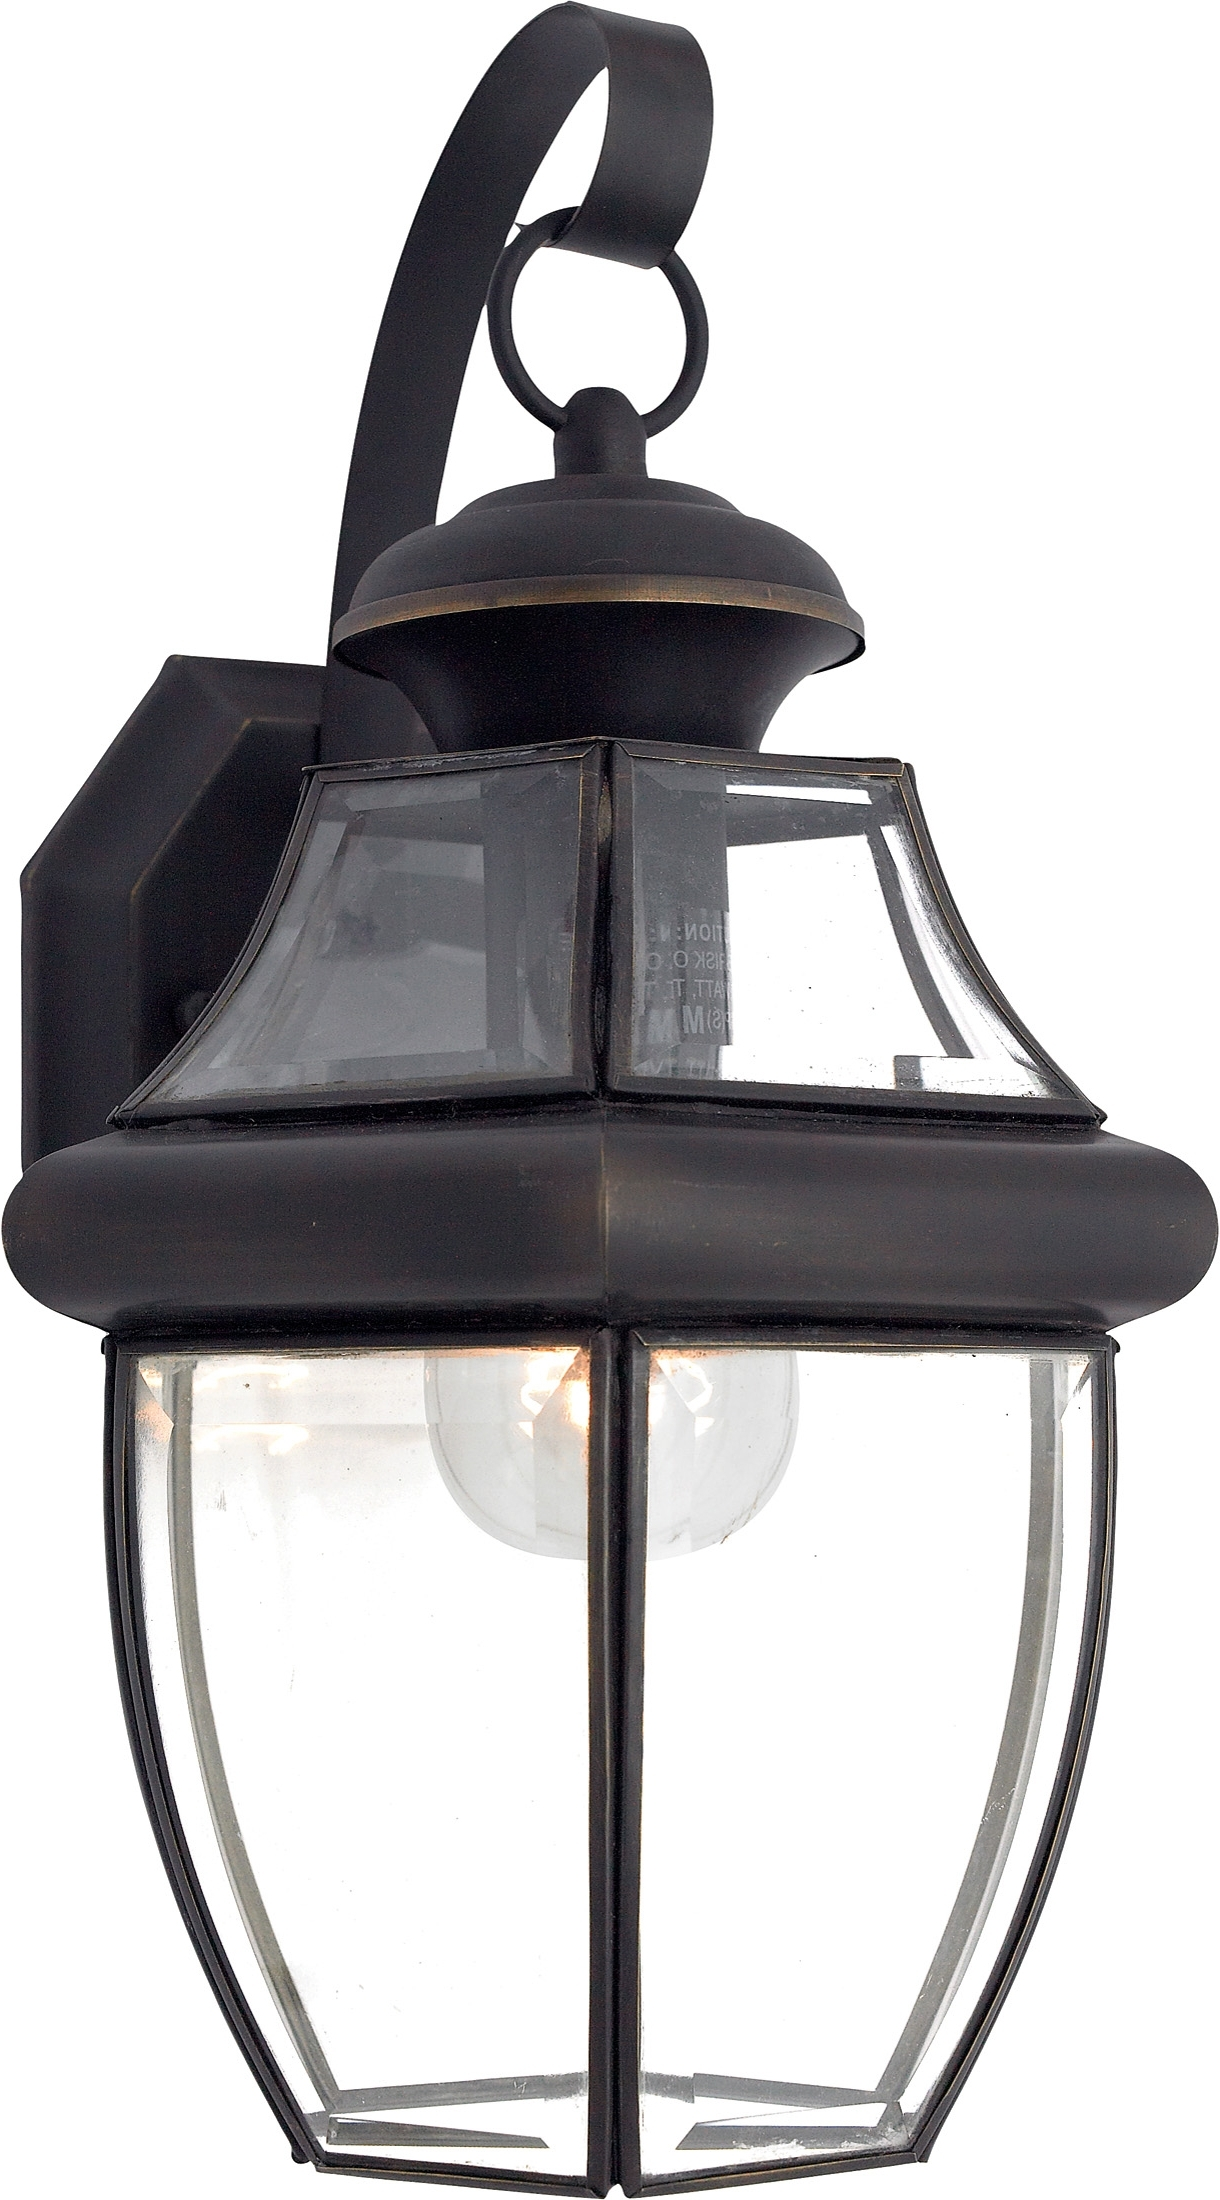 Famous Home Decor + Home Lighting Blog » Blog Archive » Quoizel Lighting Pertaining To Traditional Outdoor Wall Lights (View 7 of 20)